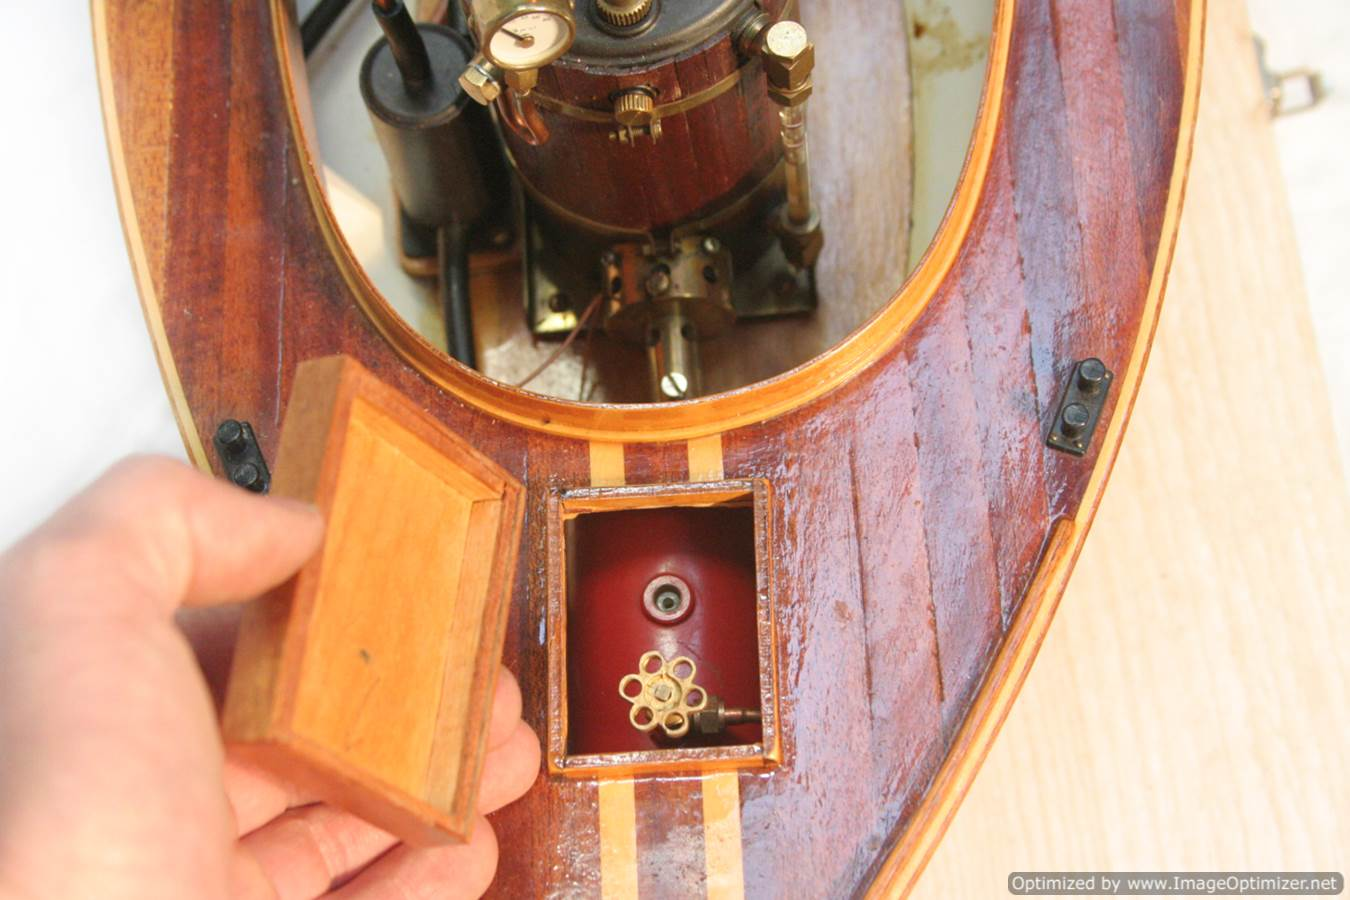 test anna-cheddar-steam-boat-live-steam-model-for-sale-15-optimized